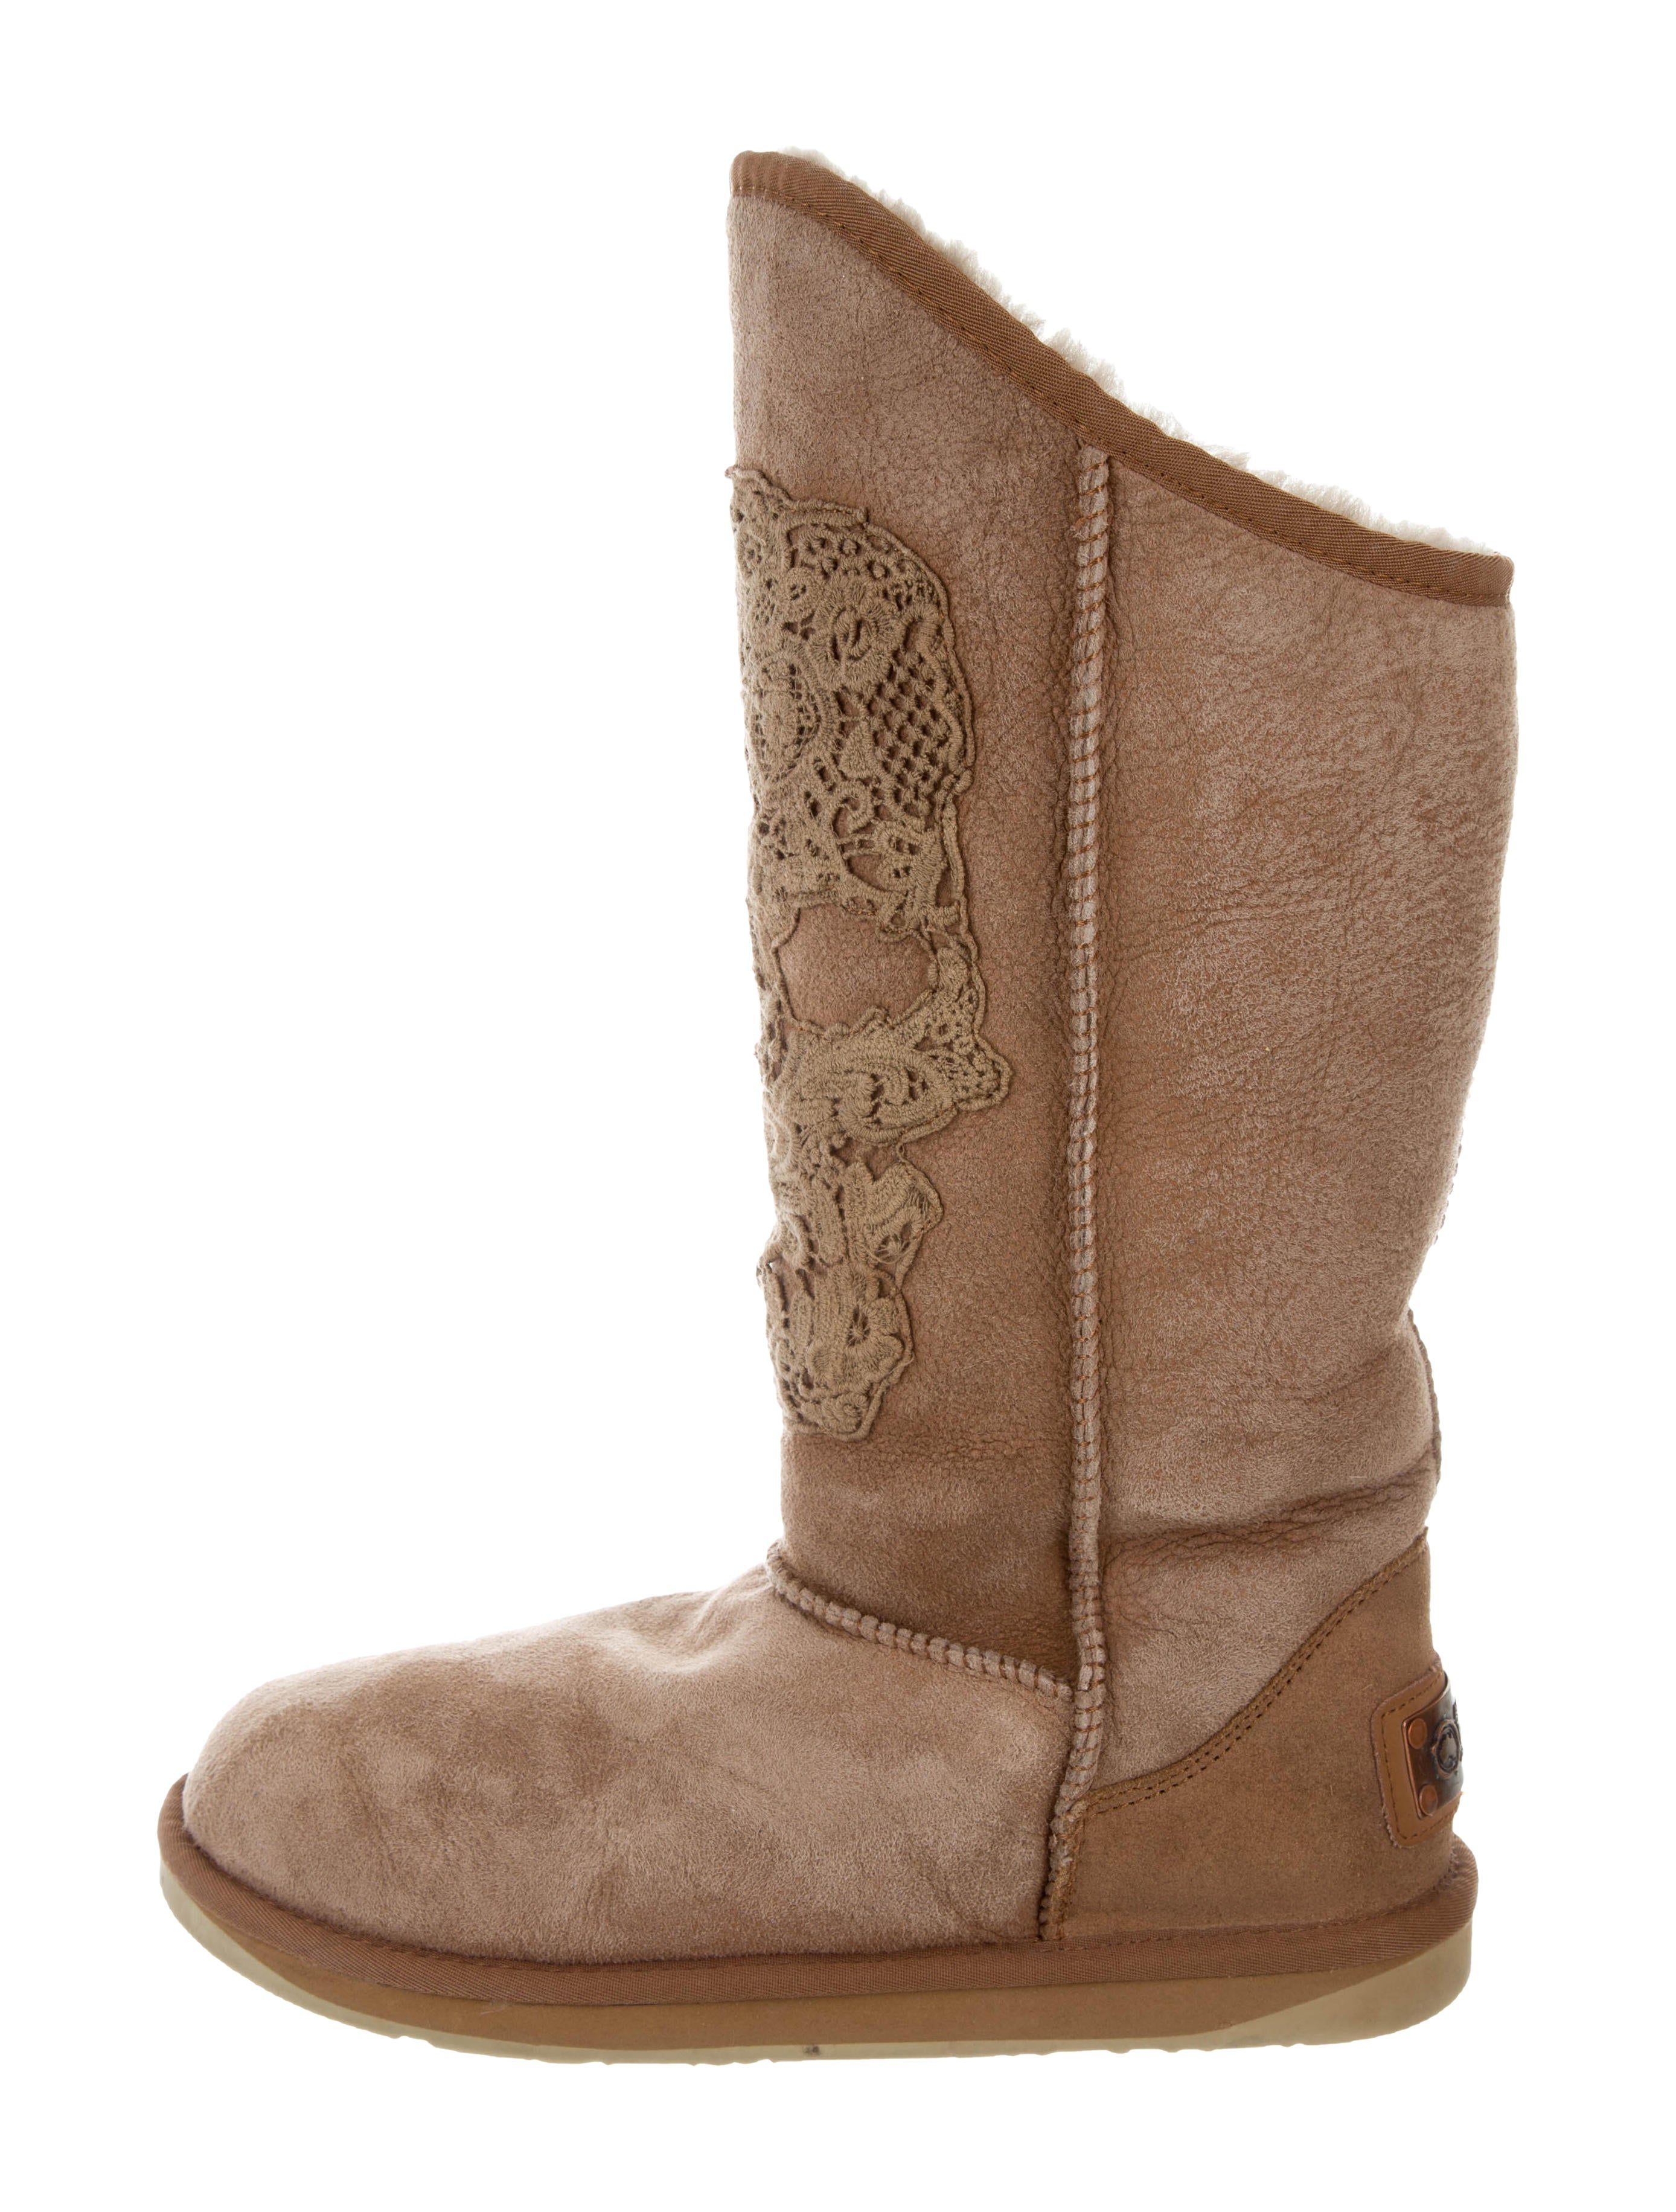 Australia Luxe Collective Embroidered Suede Boots outlet reliable discount choice i7oaQ4sHgX